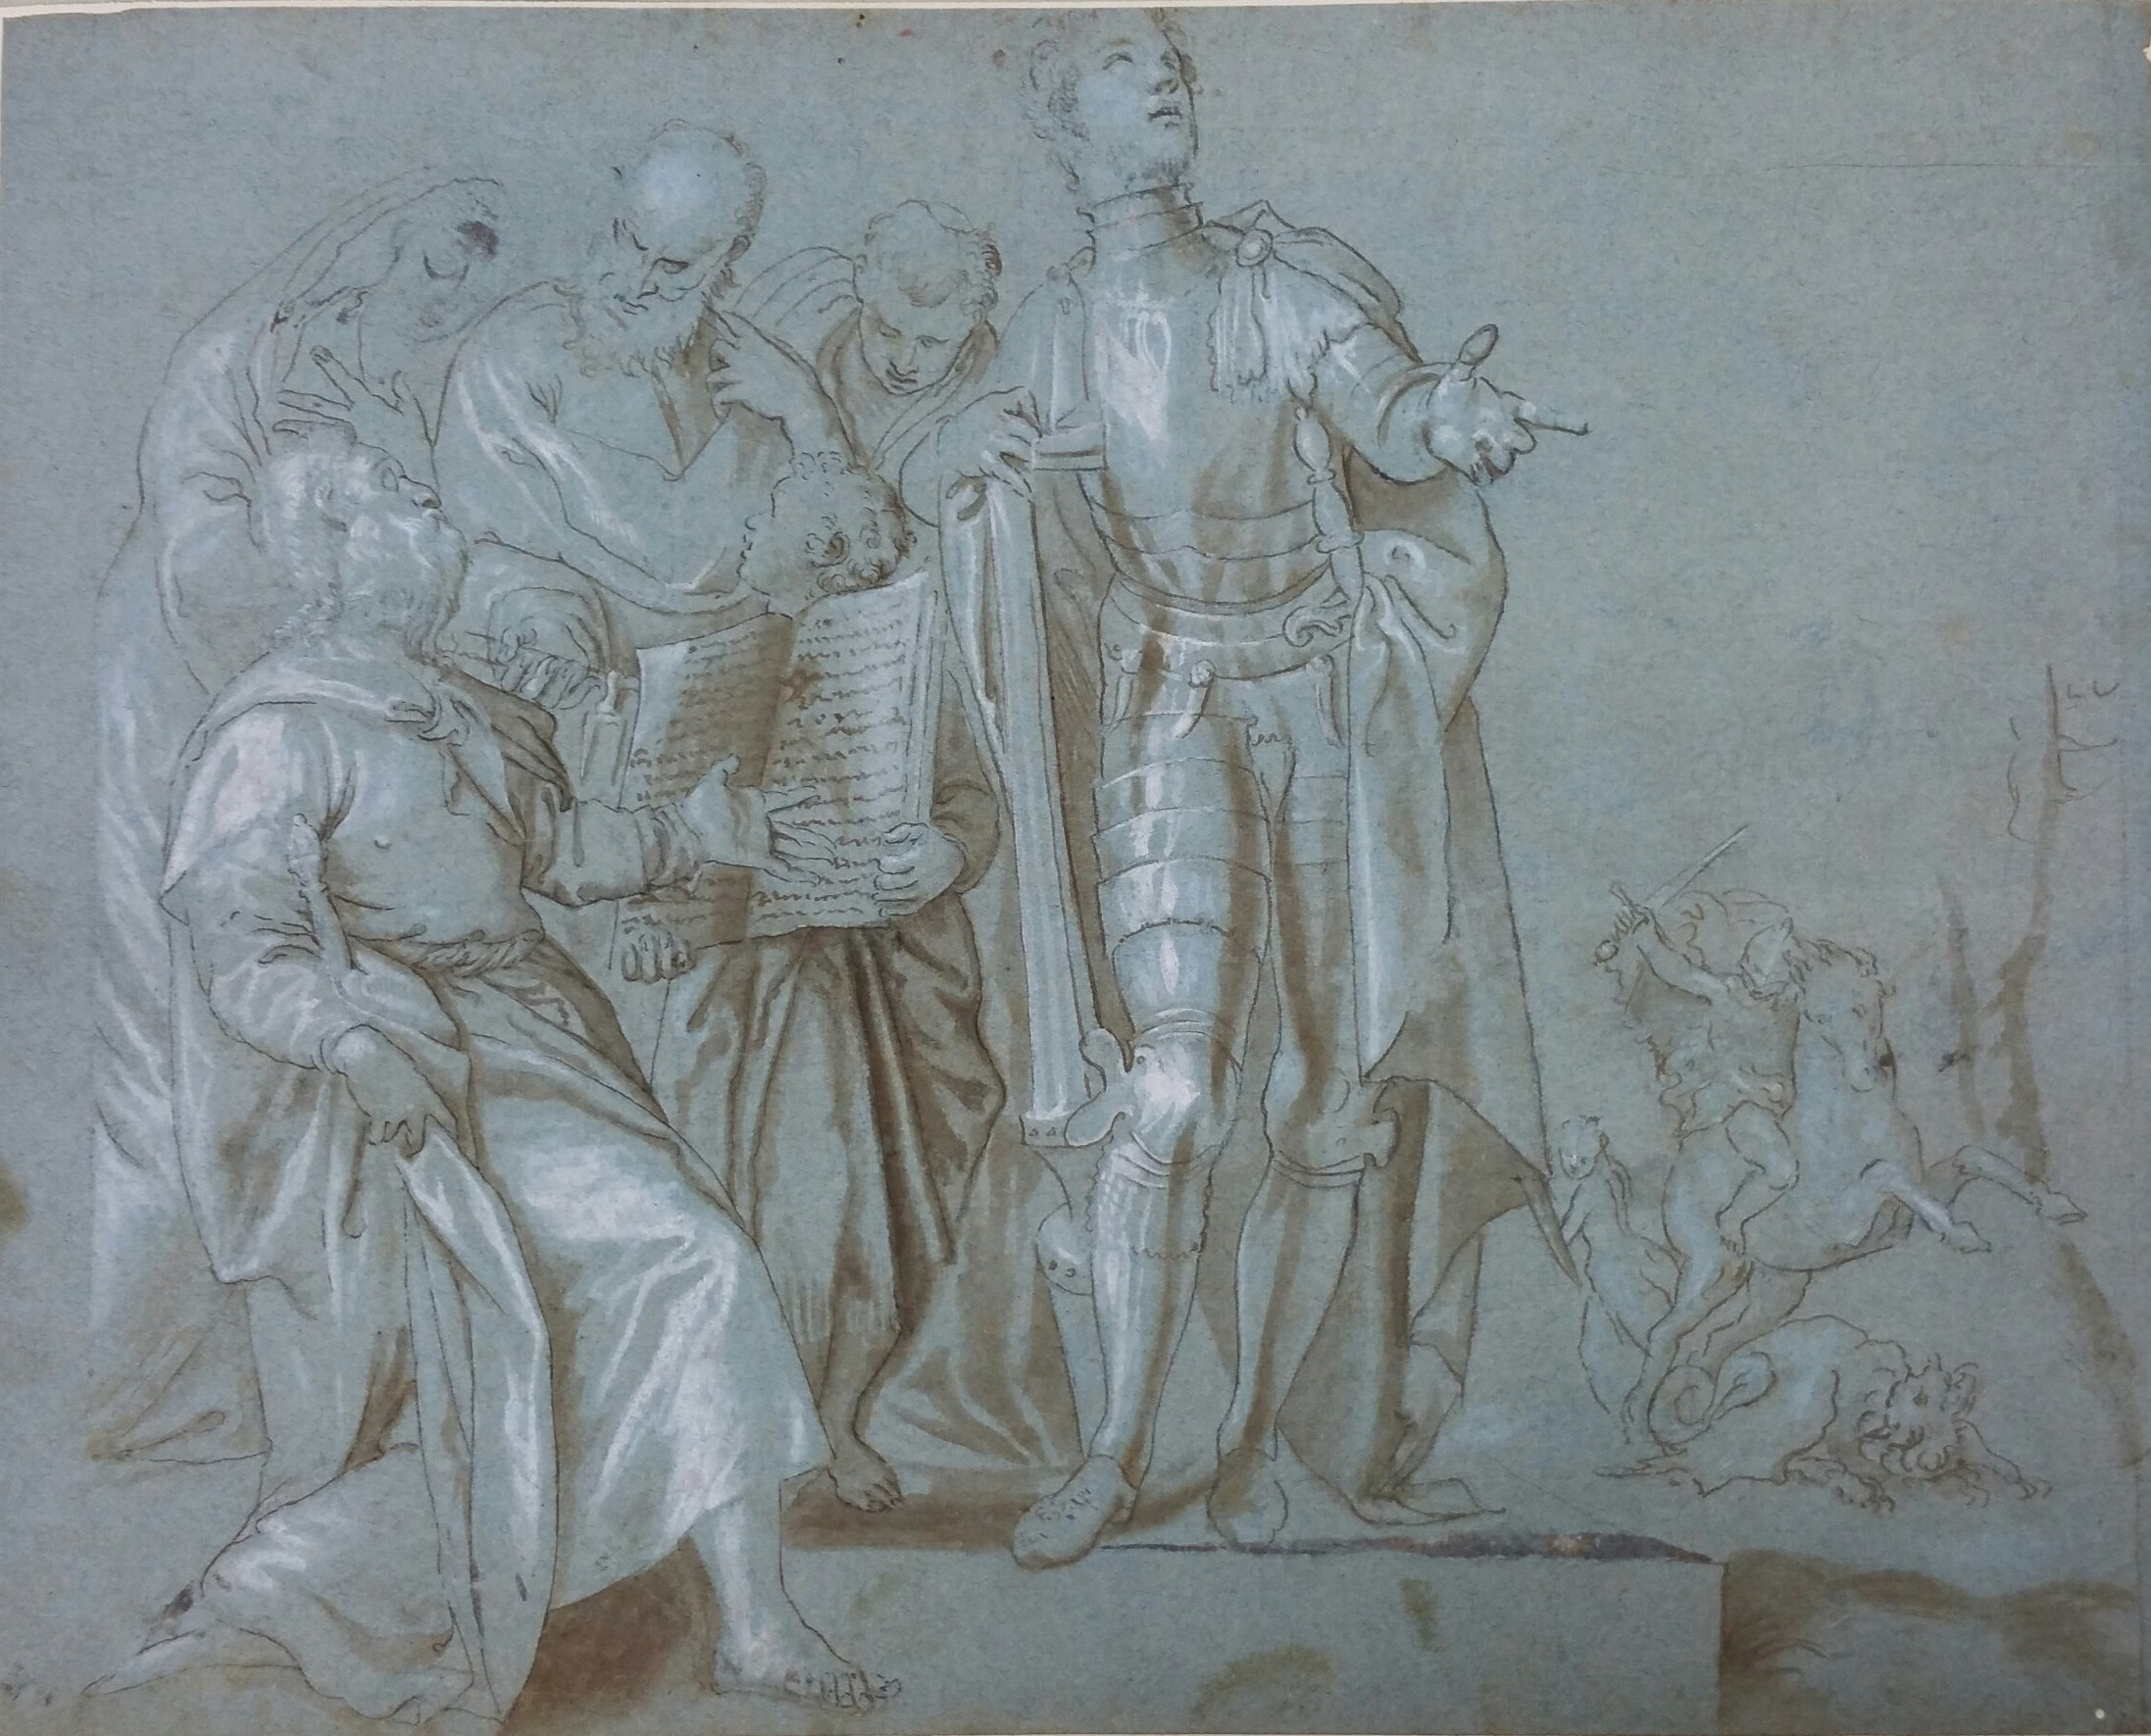 Workshop of Veronese, with question of his hand,  Compositional Study or Ricordo  related to the  Bottom Half of the Altar of St. George in Braida.